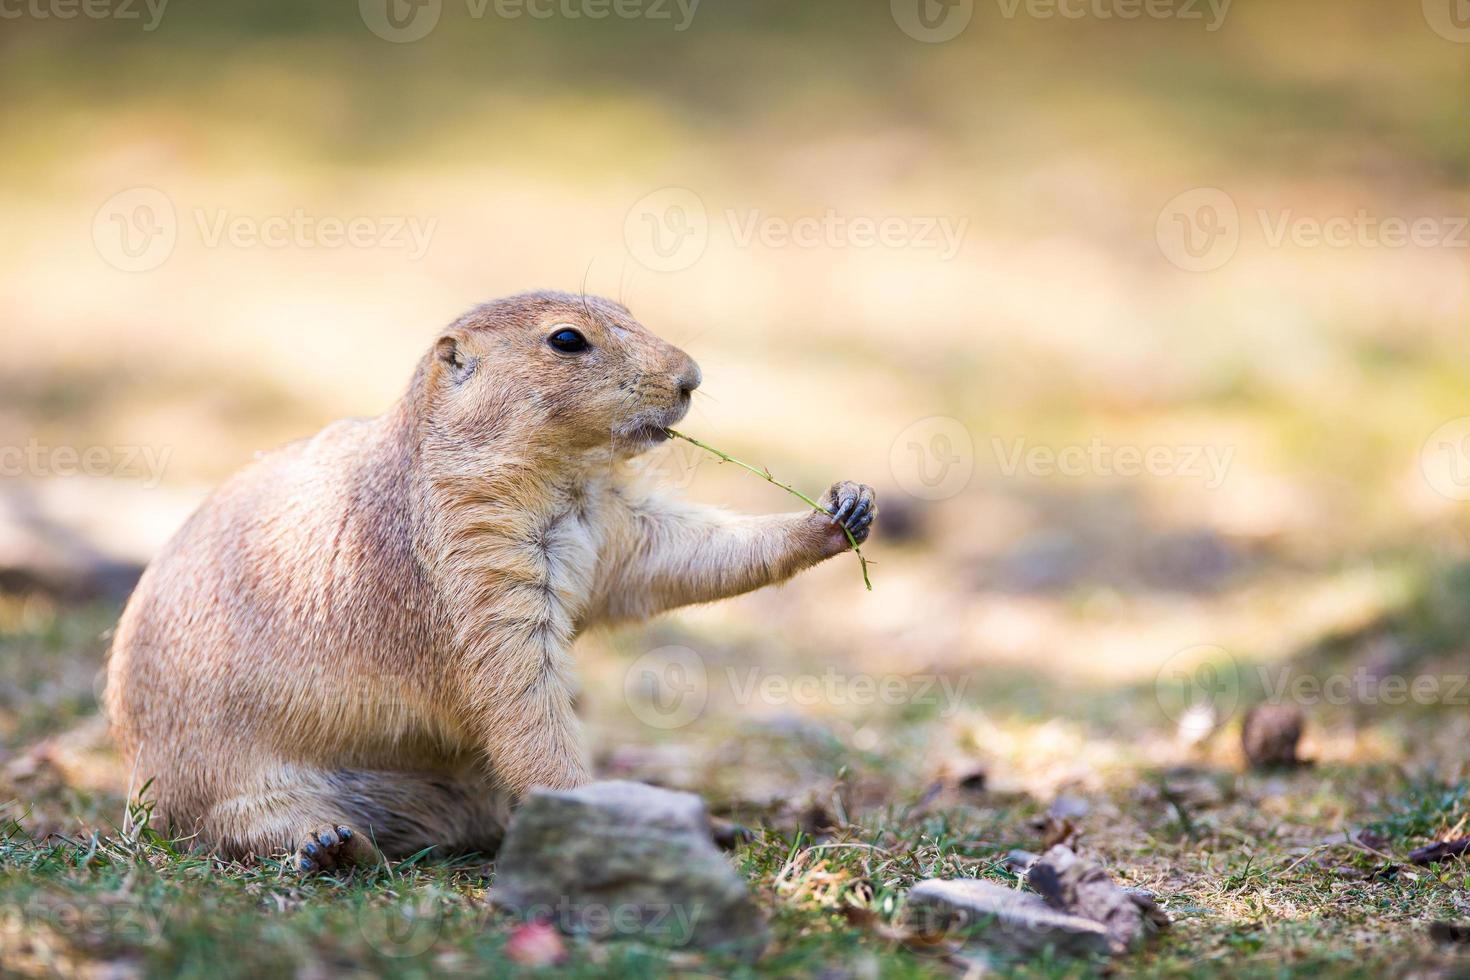 Black tailed prairie dog (Cynomys ludovicianus) photo